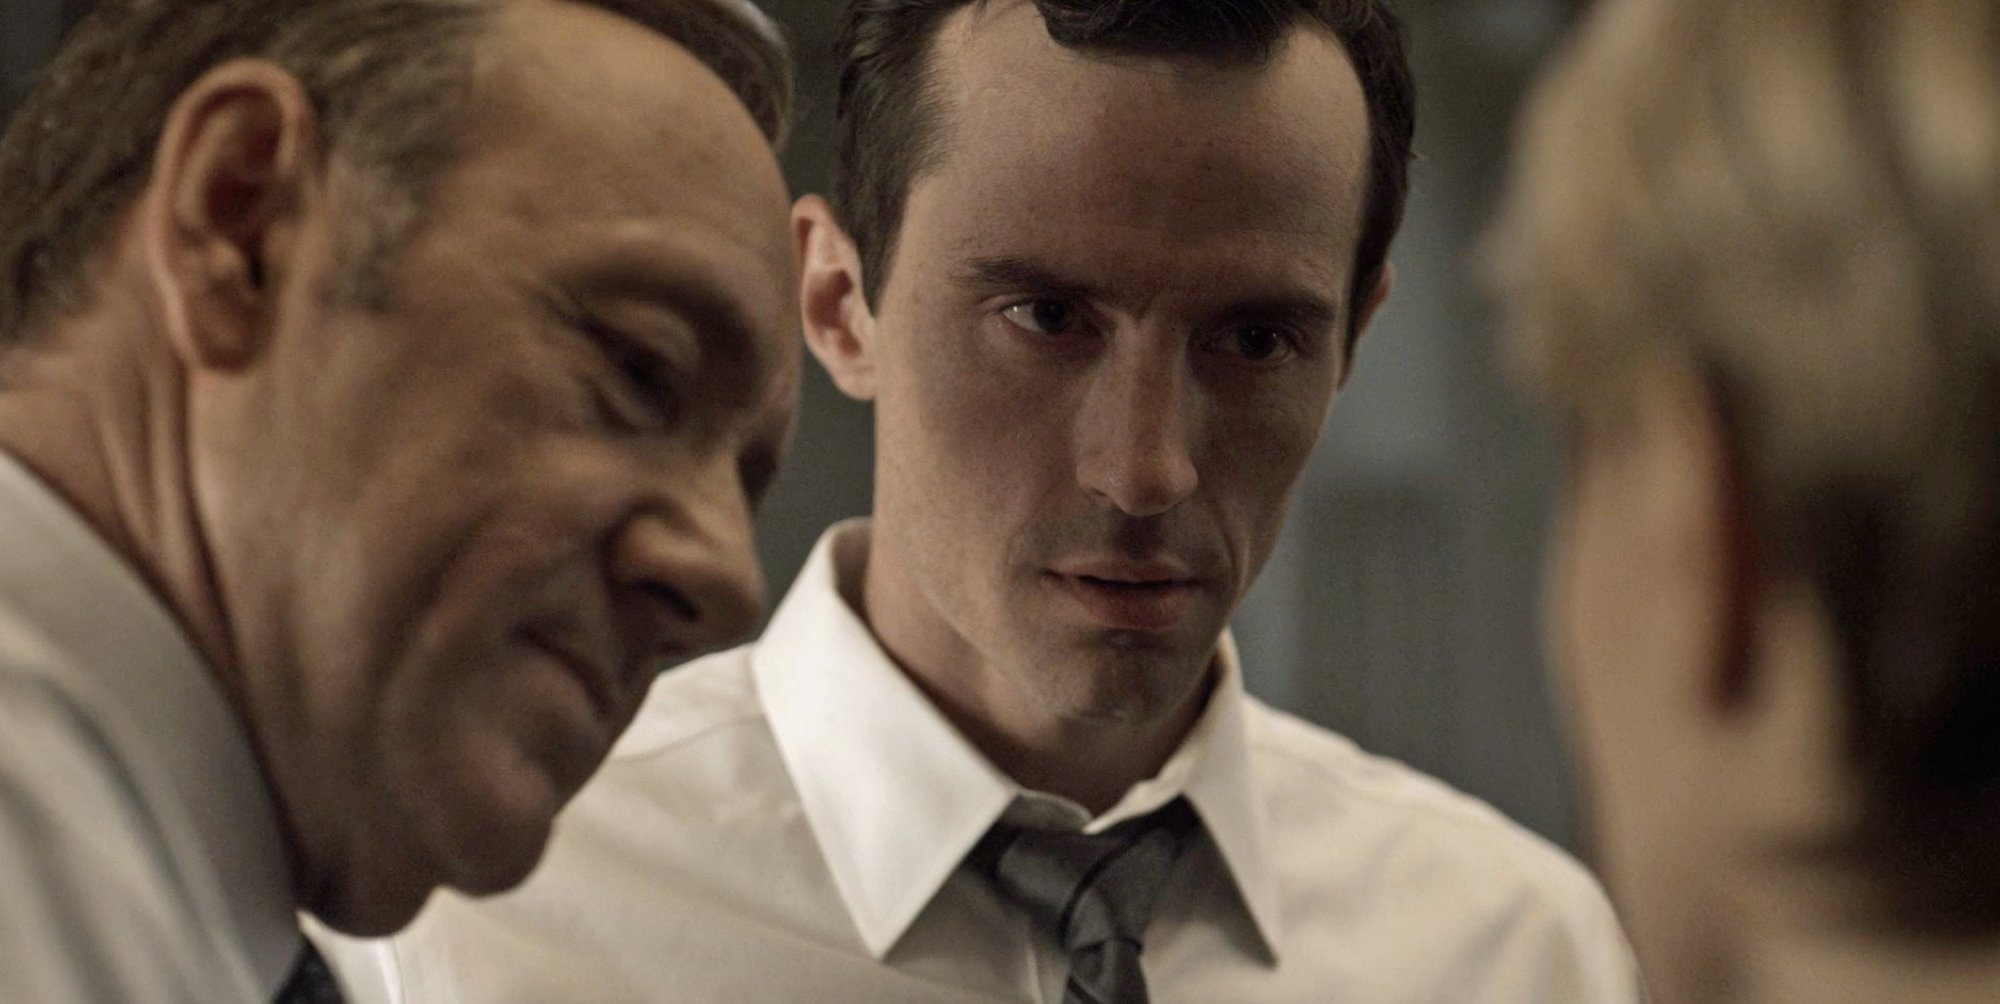 house of cards underwood meechum threechum | the lonely tribalist